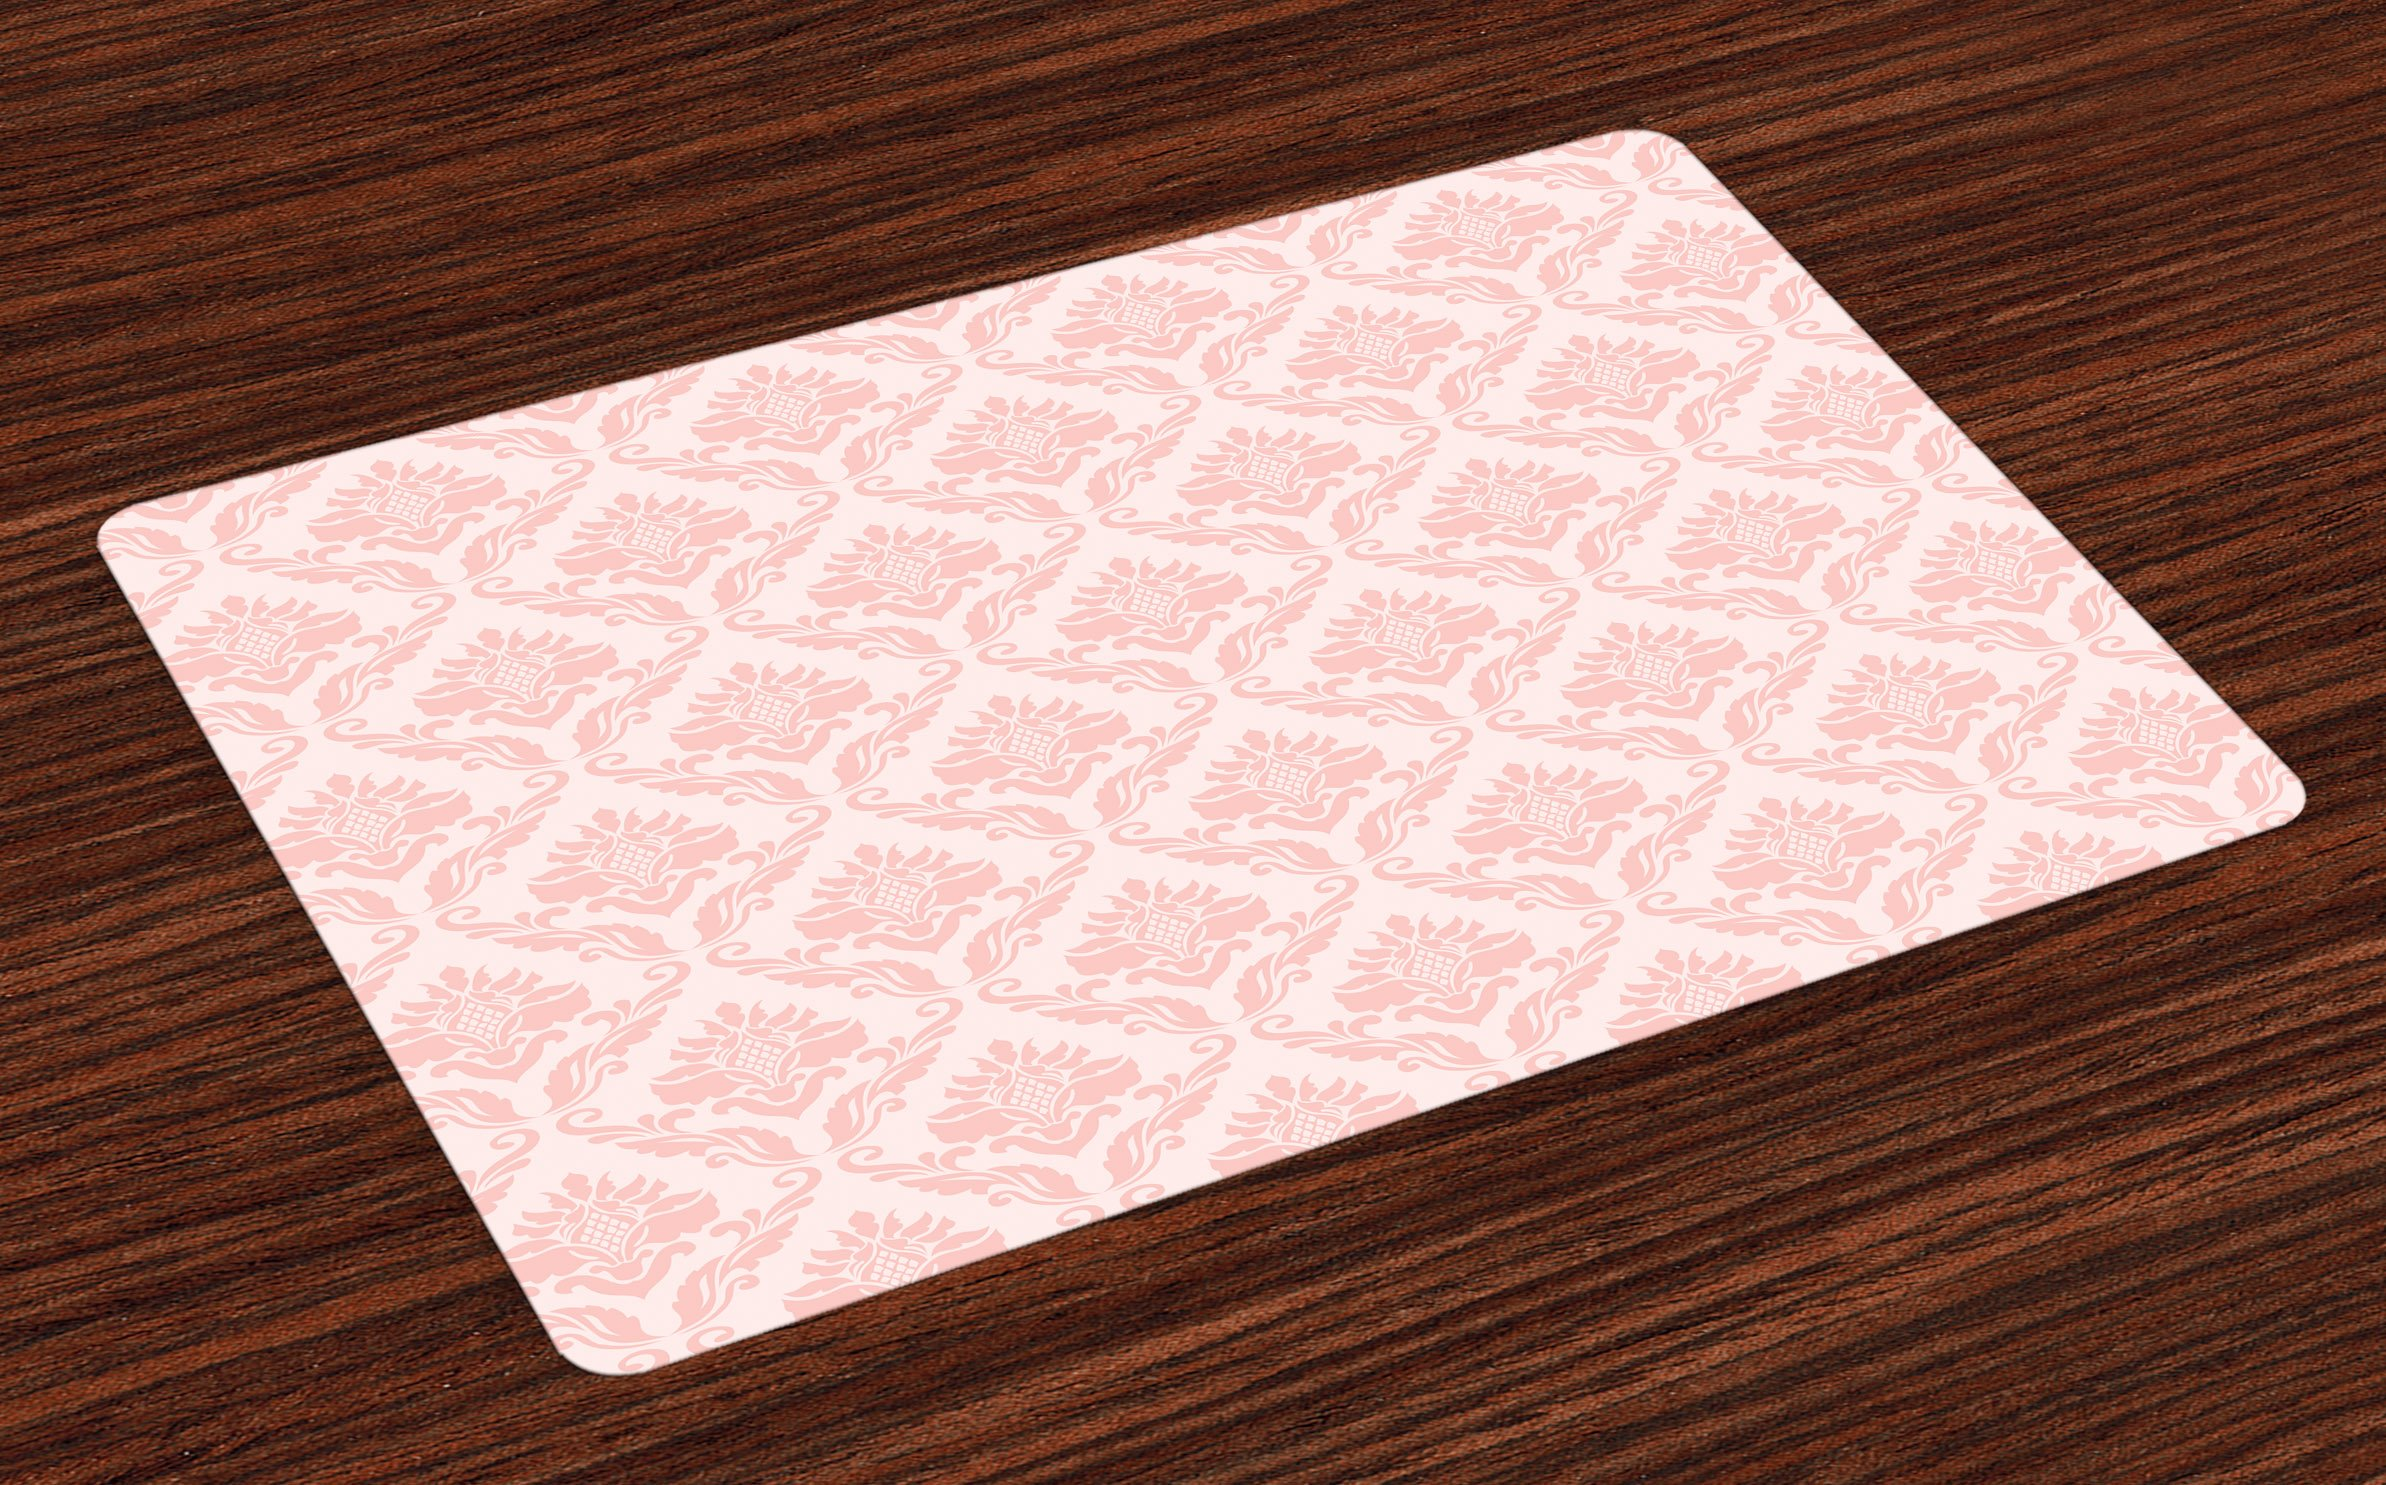 Lunarable Blush Place Mats Set of 4, Damask Motif Retro Design of Floral Pattern with Swirling Petals and Branches, Washable Fabric Placemats for Dining Room Kitchen Table Decoration, White Pale Pink